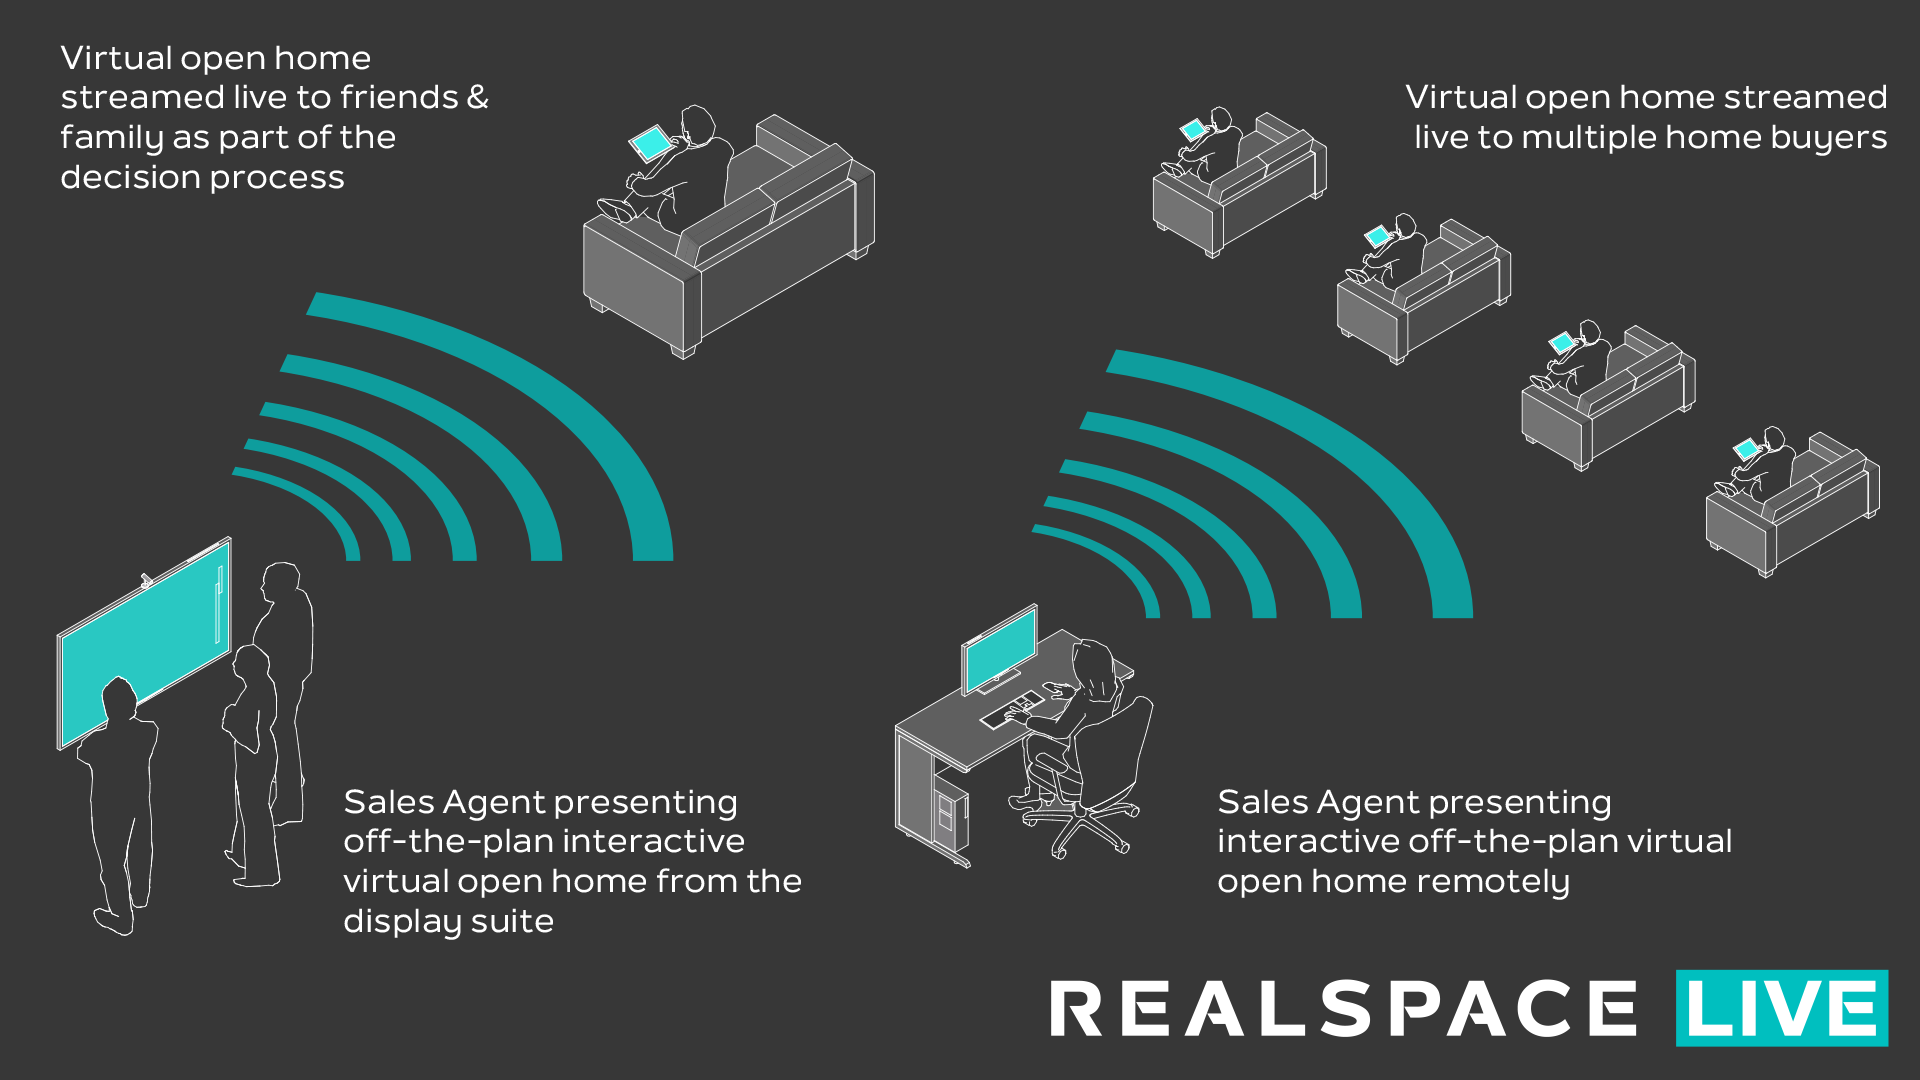 ▲ Live-streaming a Realspace digital model allows agents and buyers to connect in more meaningful and rewarding ways both in the display suite and online.